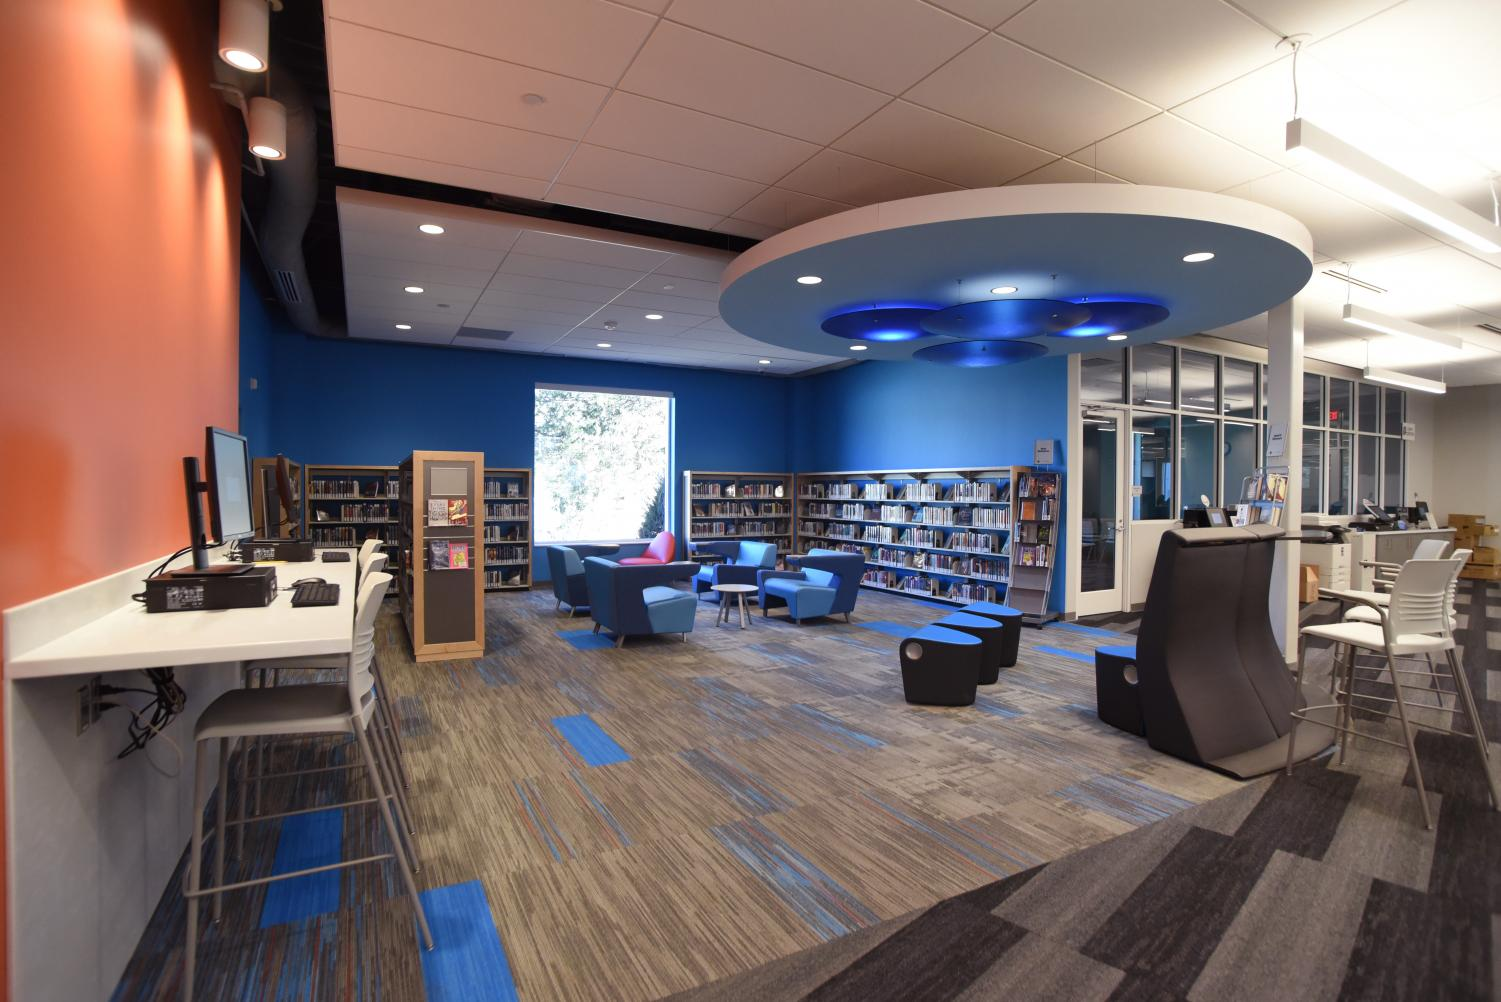 The new teen section at Thornhill library includes comfortable furniture, computer access, and space for students to study. Thornhill opens Feb. 13 after closing for renovation Jan. 6, 2018.